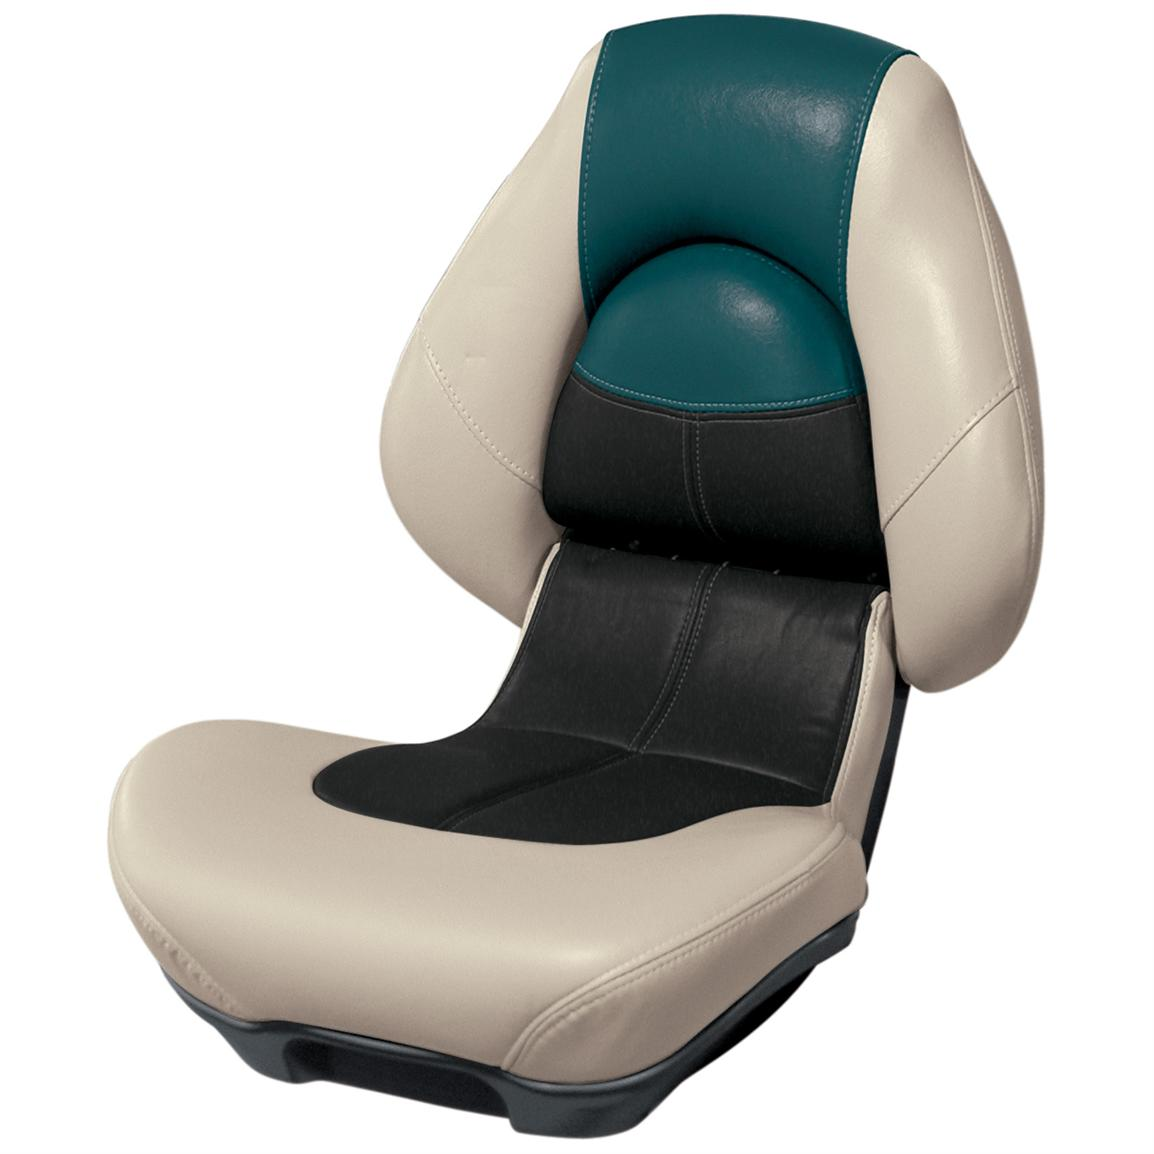 Wise® Blast-Off™ Series Centric 2 Folding Boat Seat, Mushroom / Black / Green